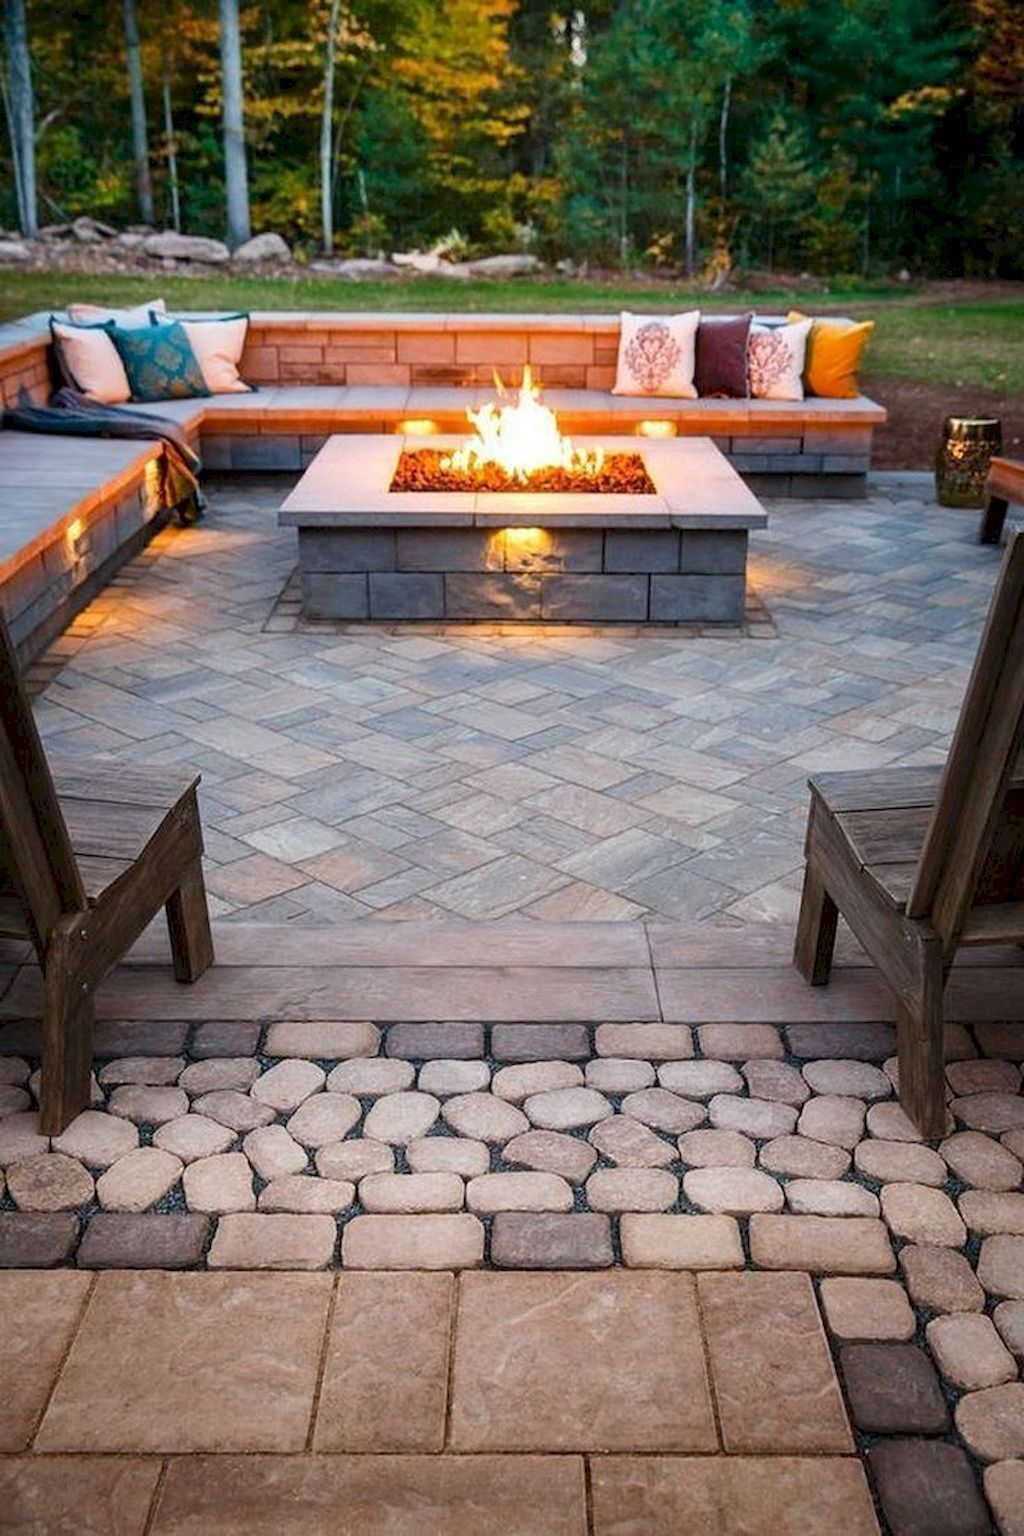 54 easy diy fire pit for backyard landscaping ideas on backyard fire pit landscaping id=64761